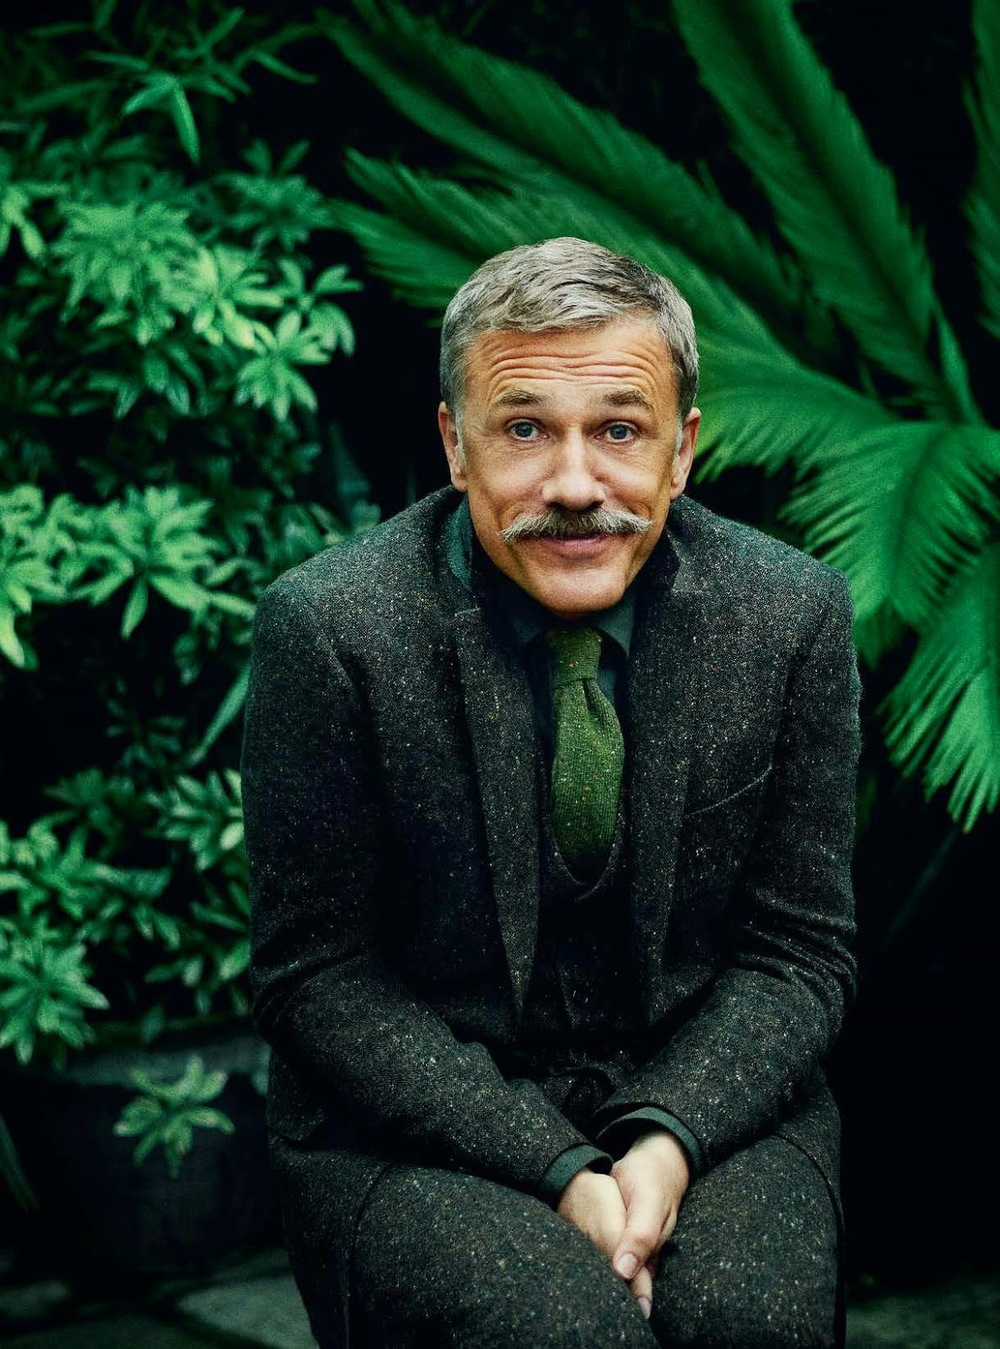 Christoph-Waltz-Esquire-UK-November-2014-Tomo-Brejc-7.jpg